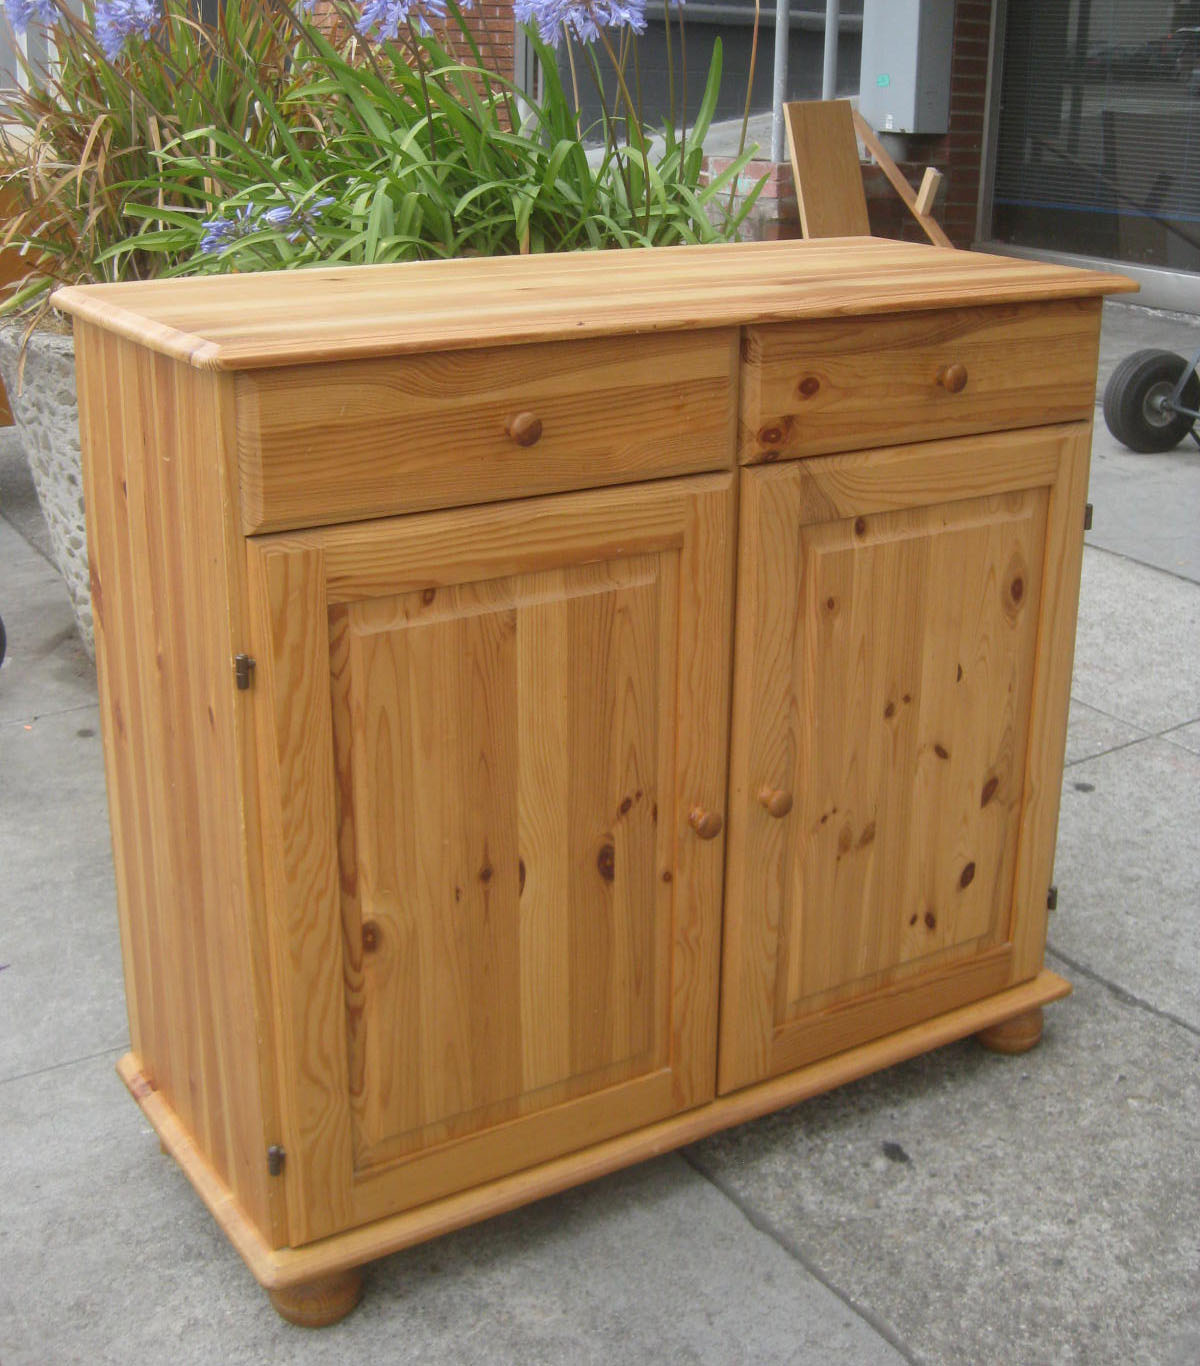 Uhuru furniture collectibles sold pine ikea cabinet 40 for Pine furniture